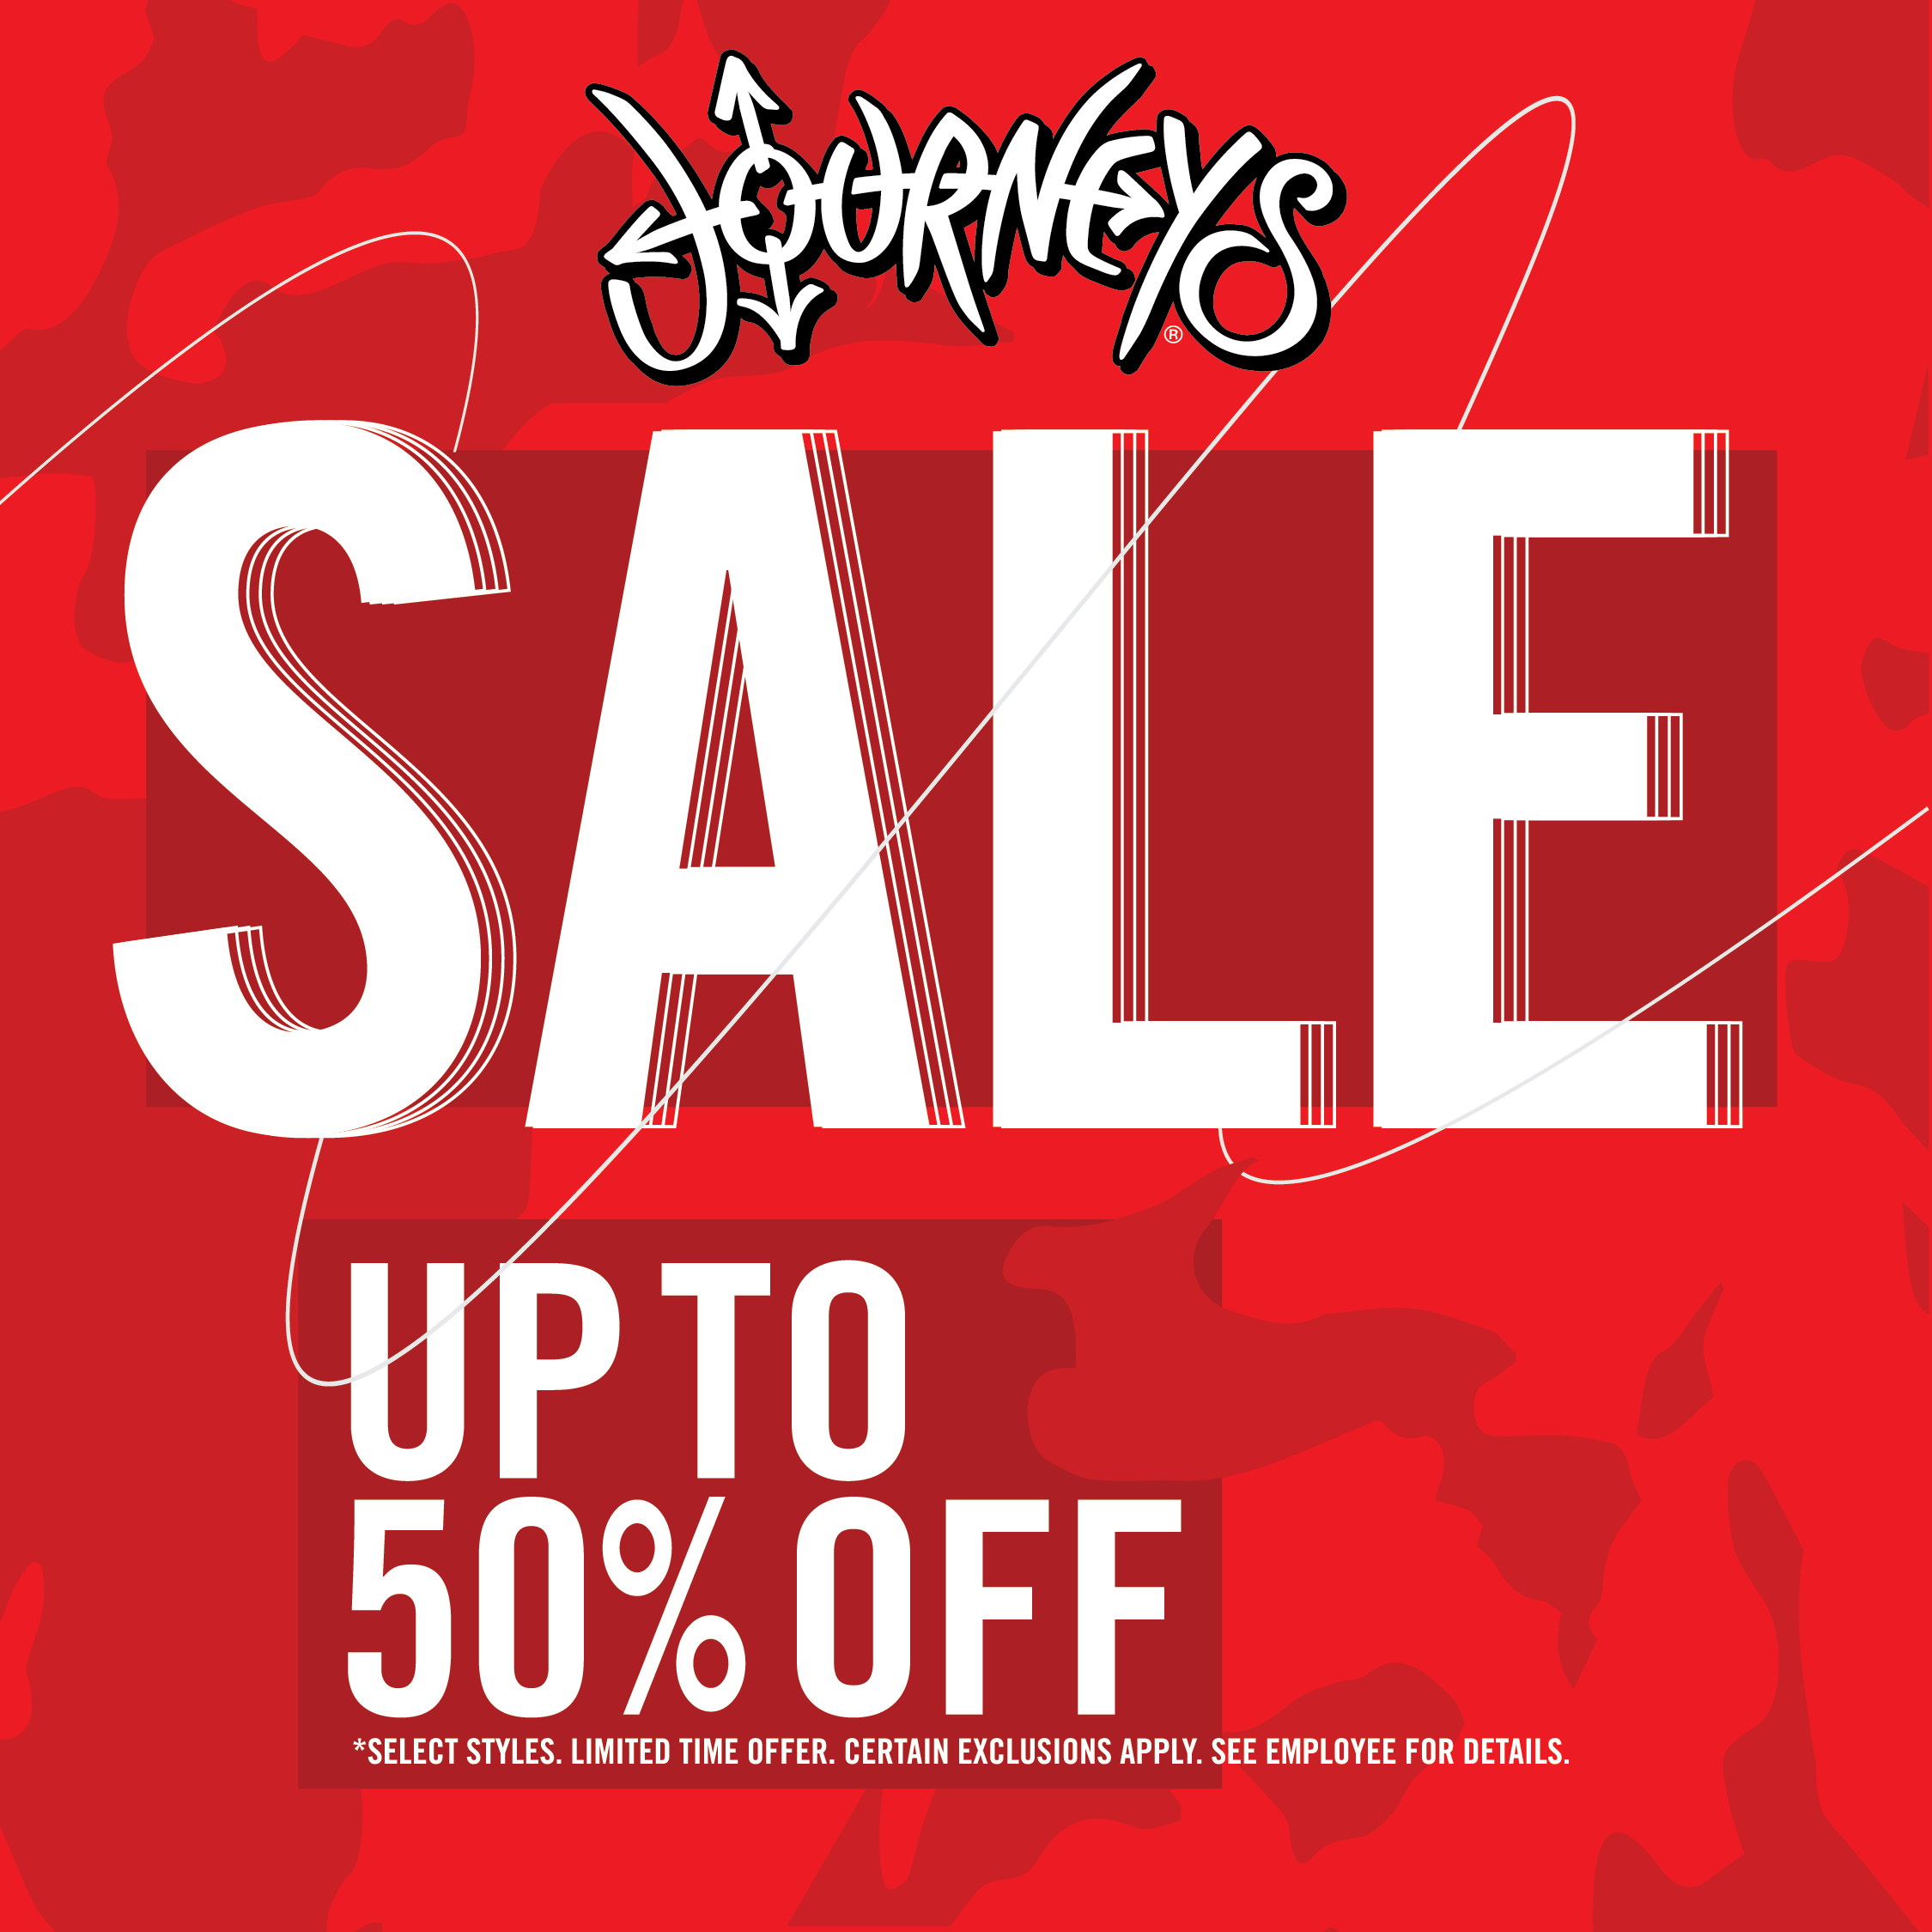 Journeys Sale Up to 50% Off